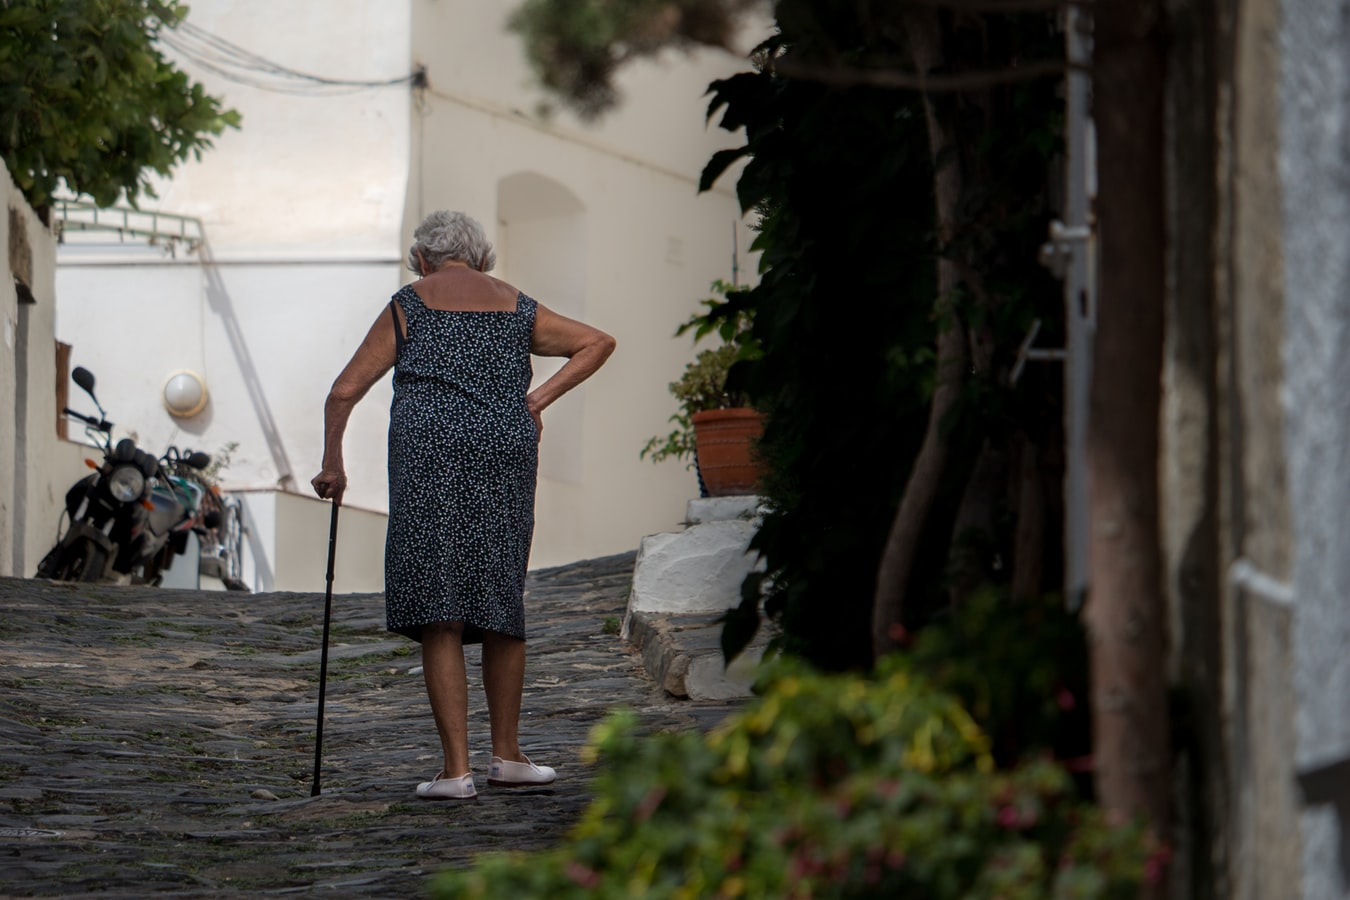 An older woman with diabetes out on a walk